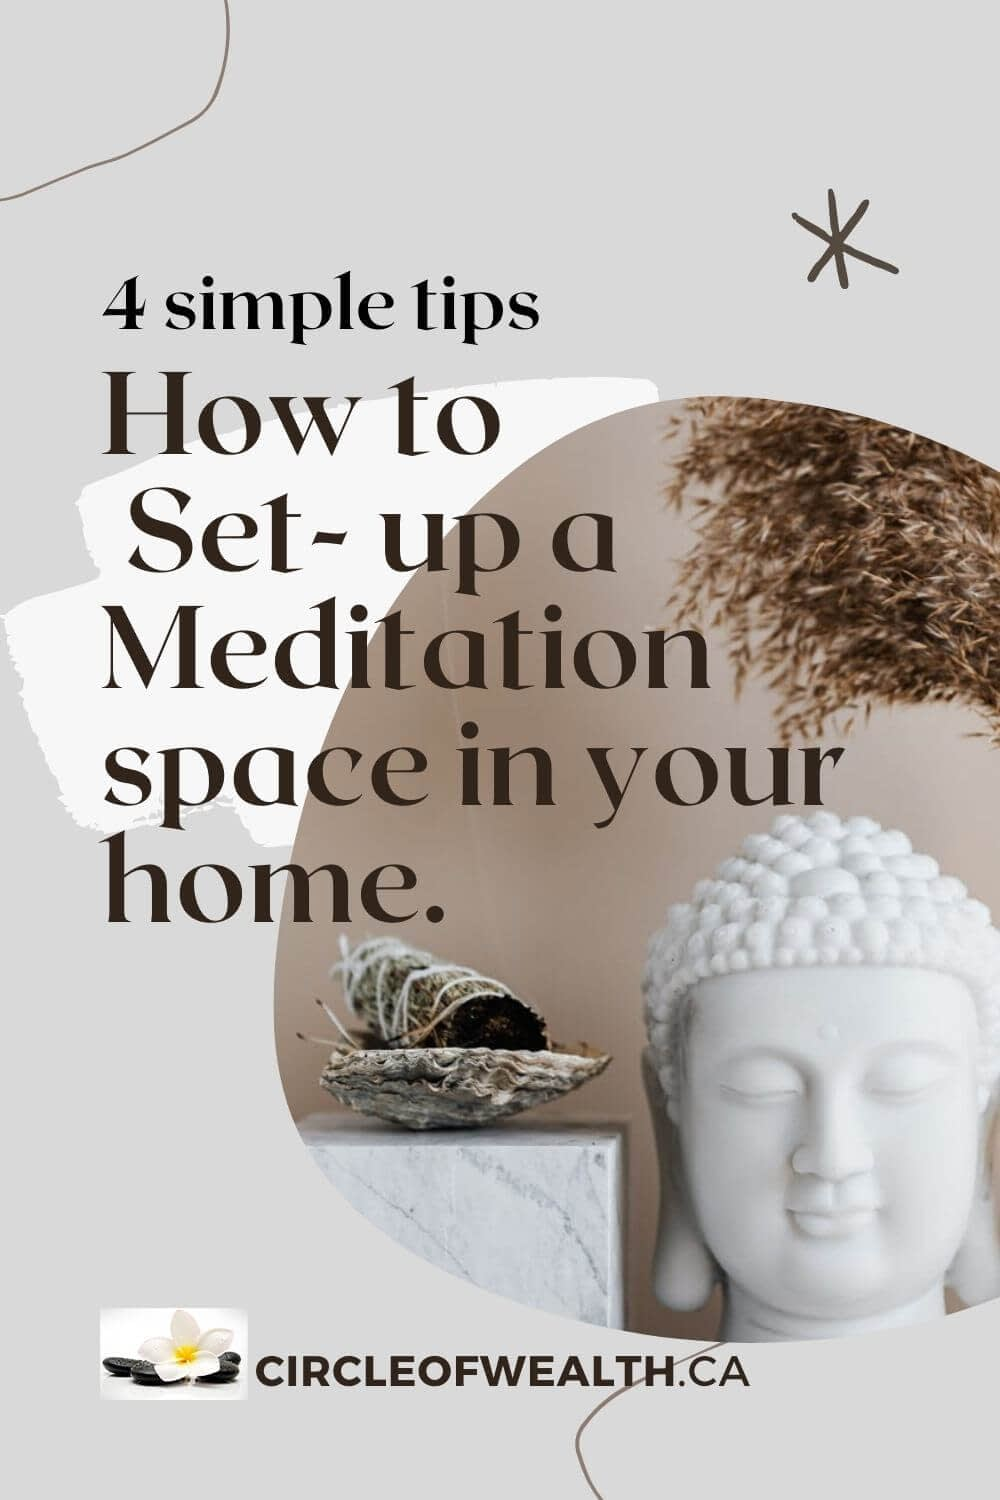 4 simple tips How to Set up a Meditation SPace in your Home